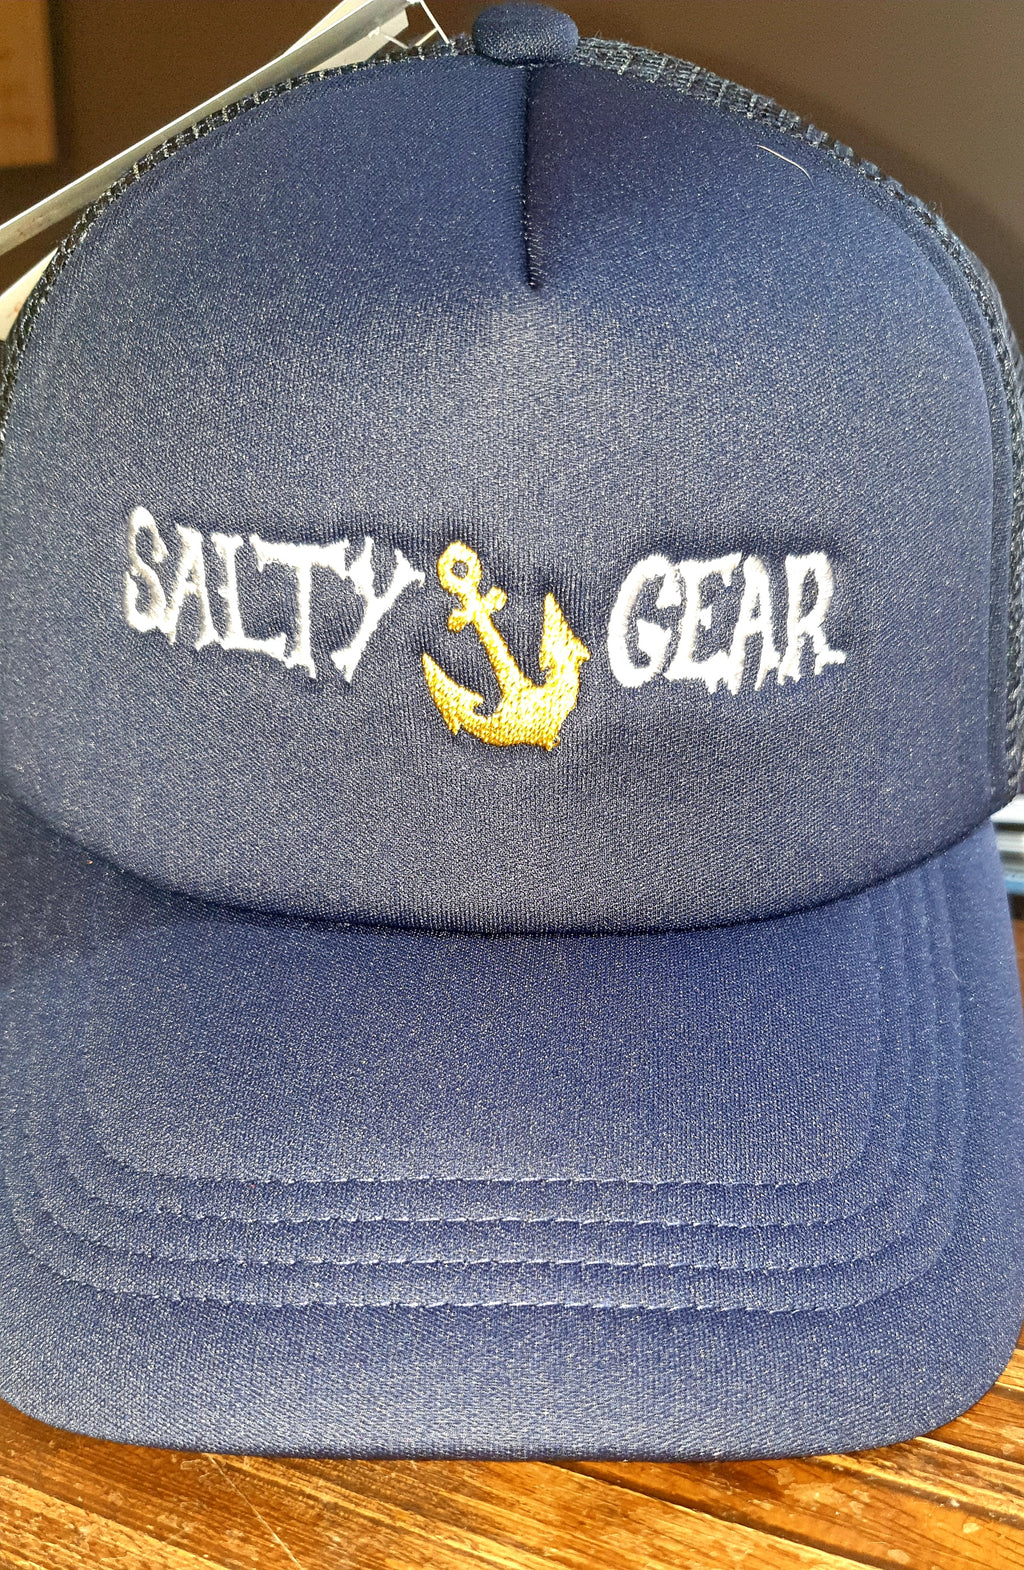 Salty⚓Gear Trucker CAPS